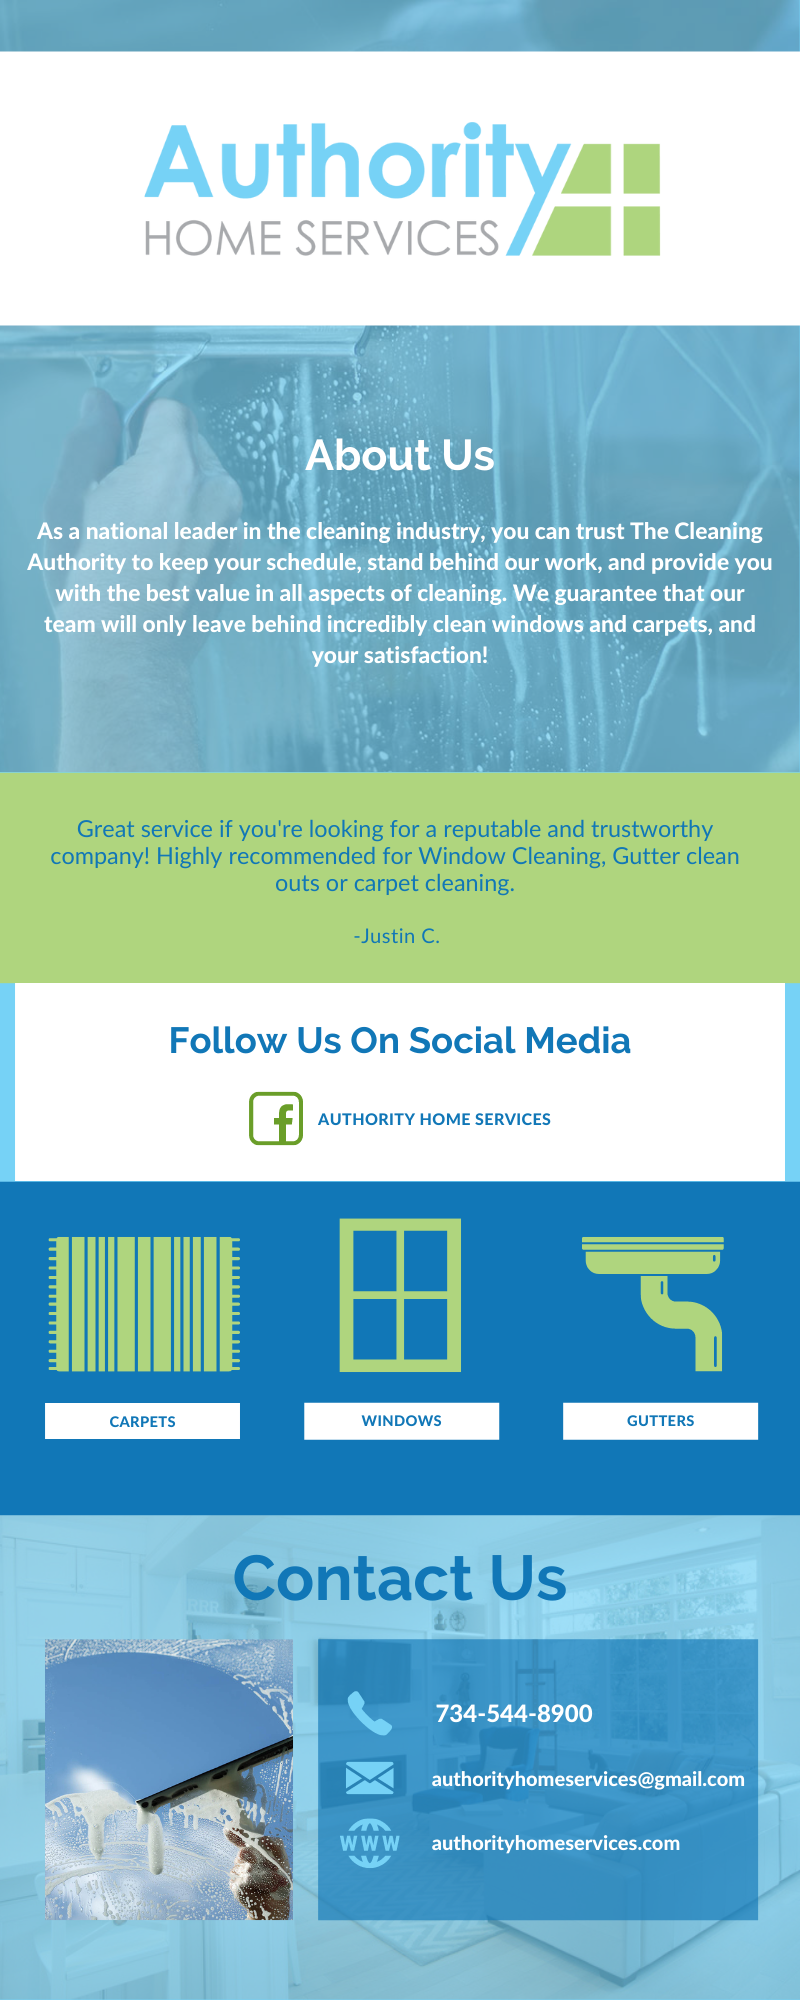 Authority Home Services Infographic